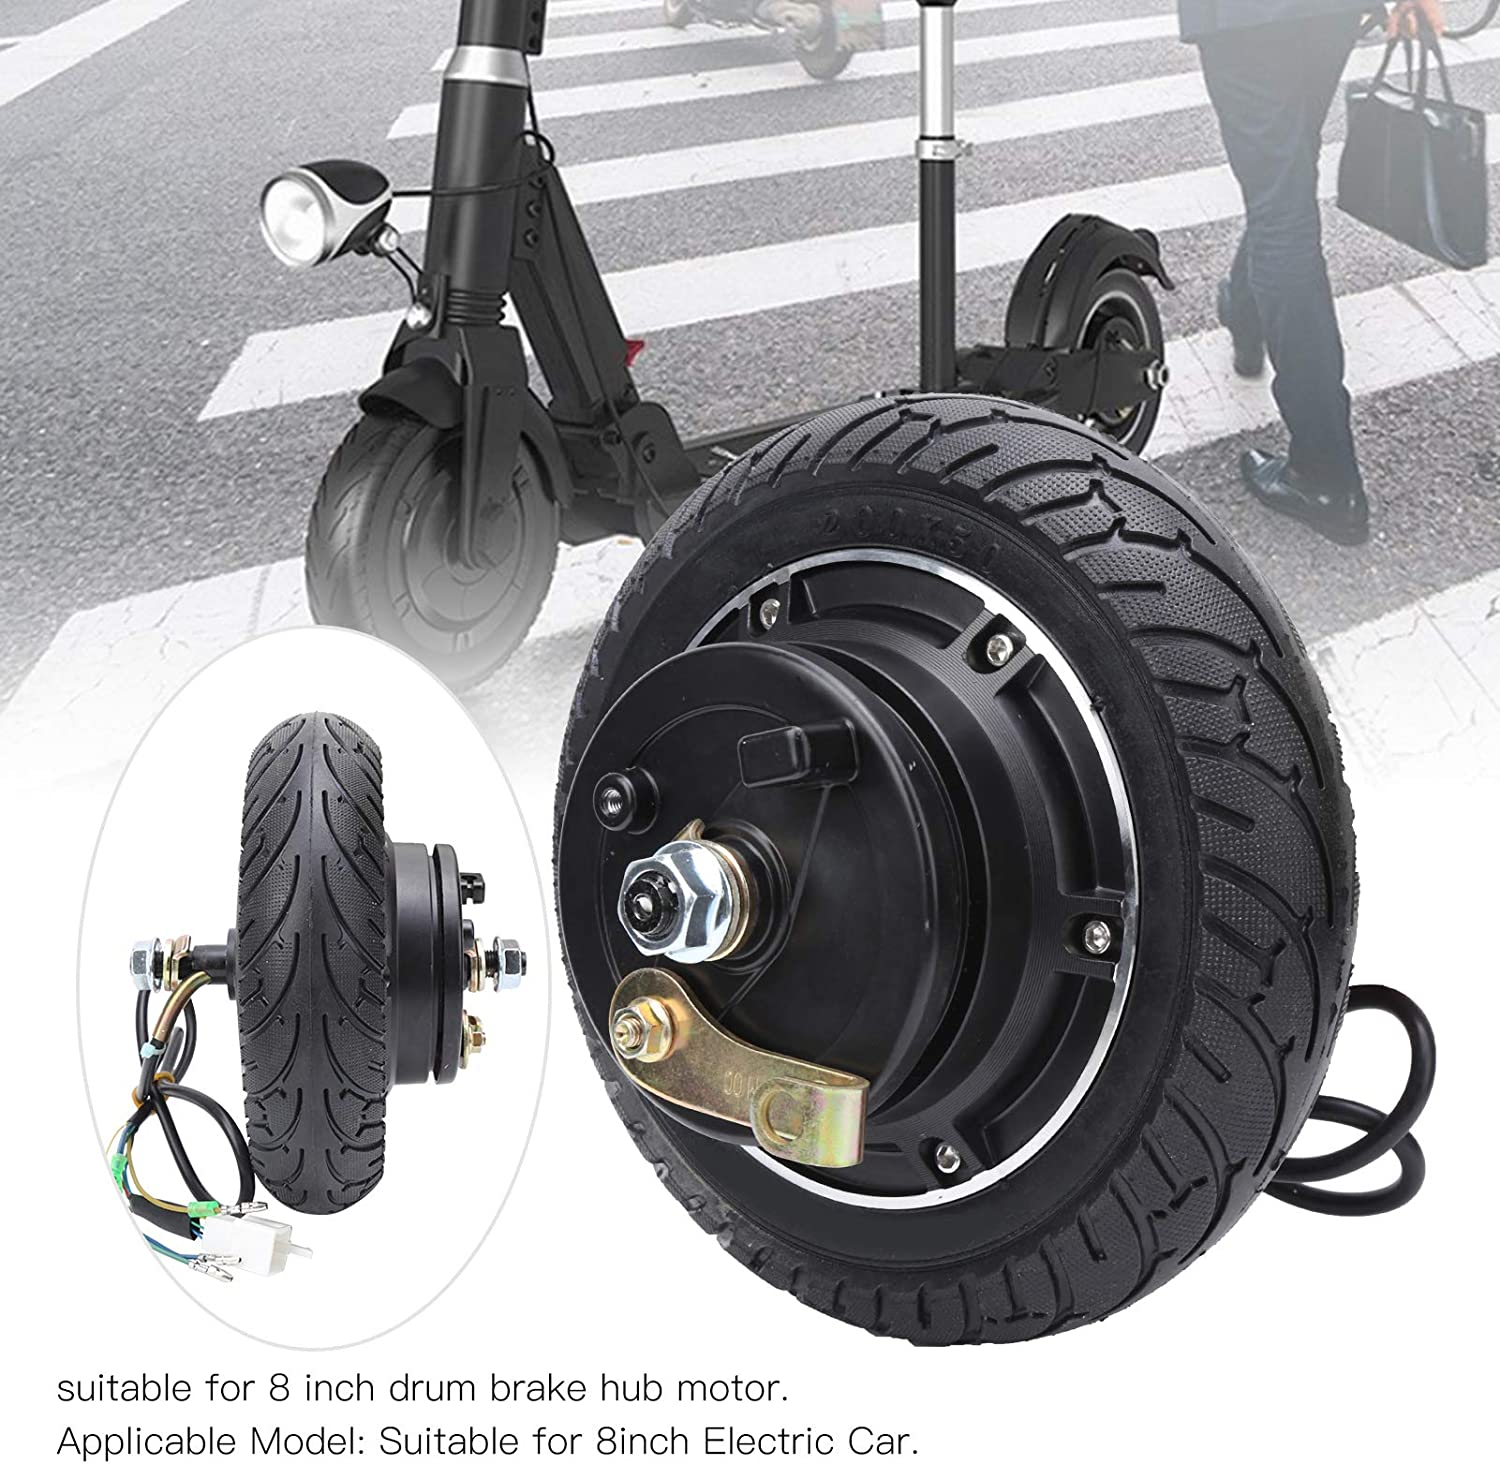 Vbestlife Hub Motor,36V 350W 8inch Electric Scooter Brushless Toothless Wheel Hub Motor with Hall Cable